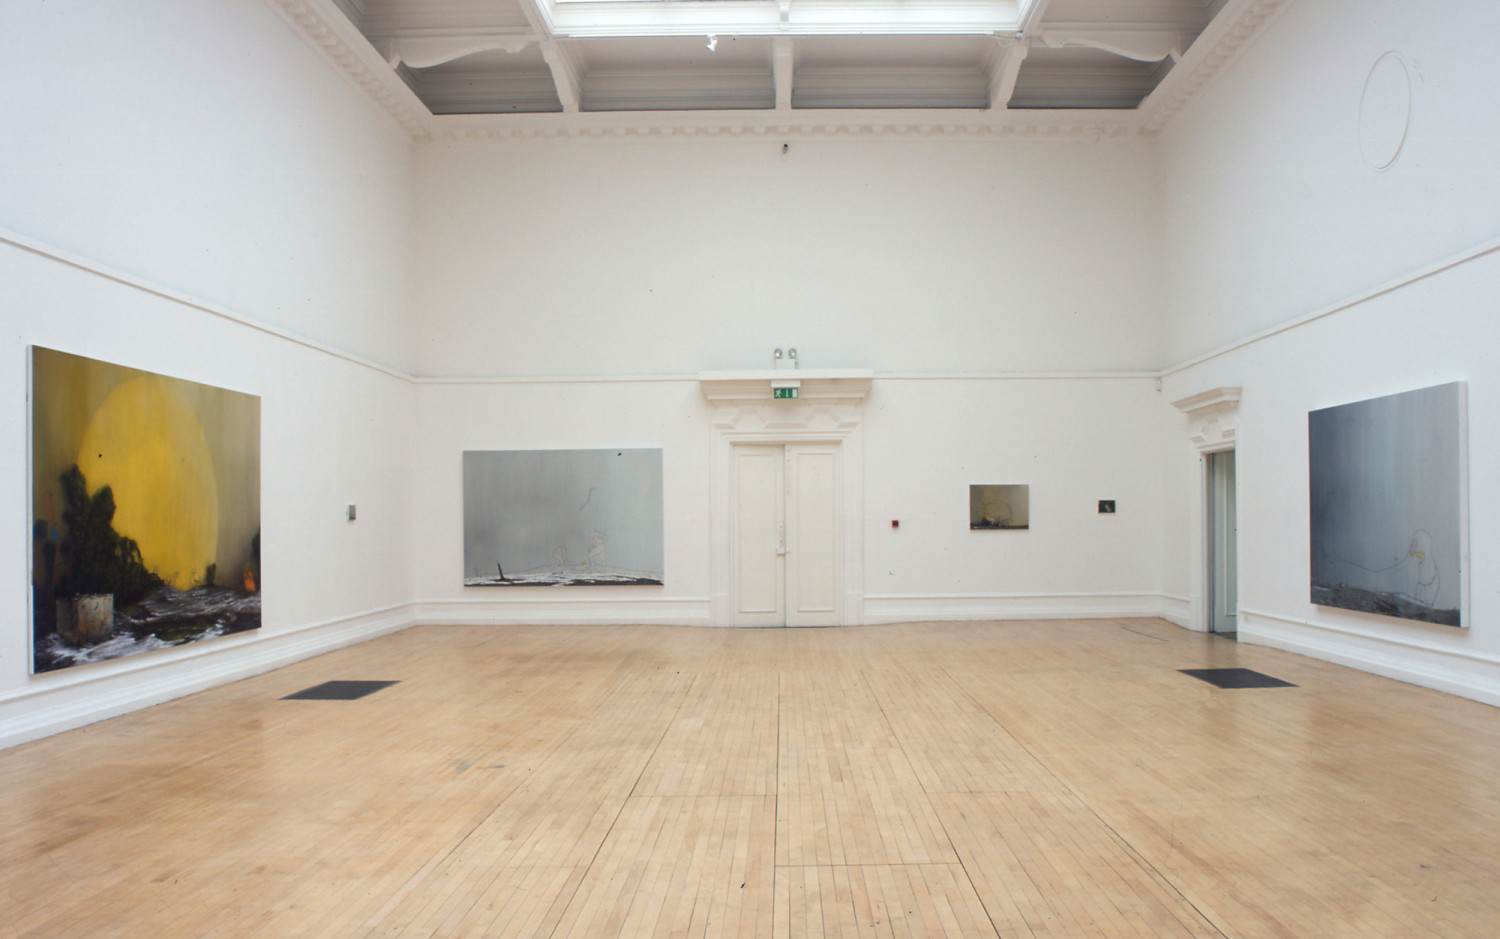 Nigel Cooke, South London Gallery 2006 – Nigel Cooke